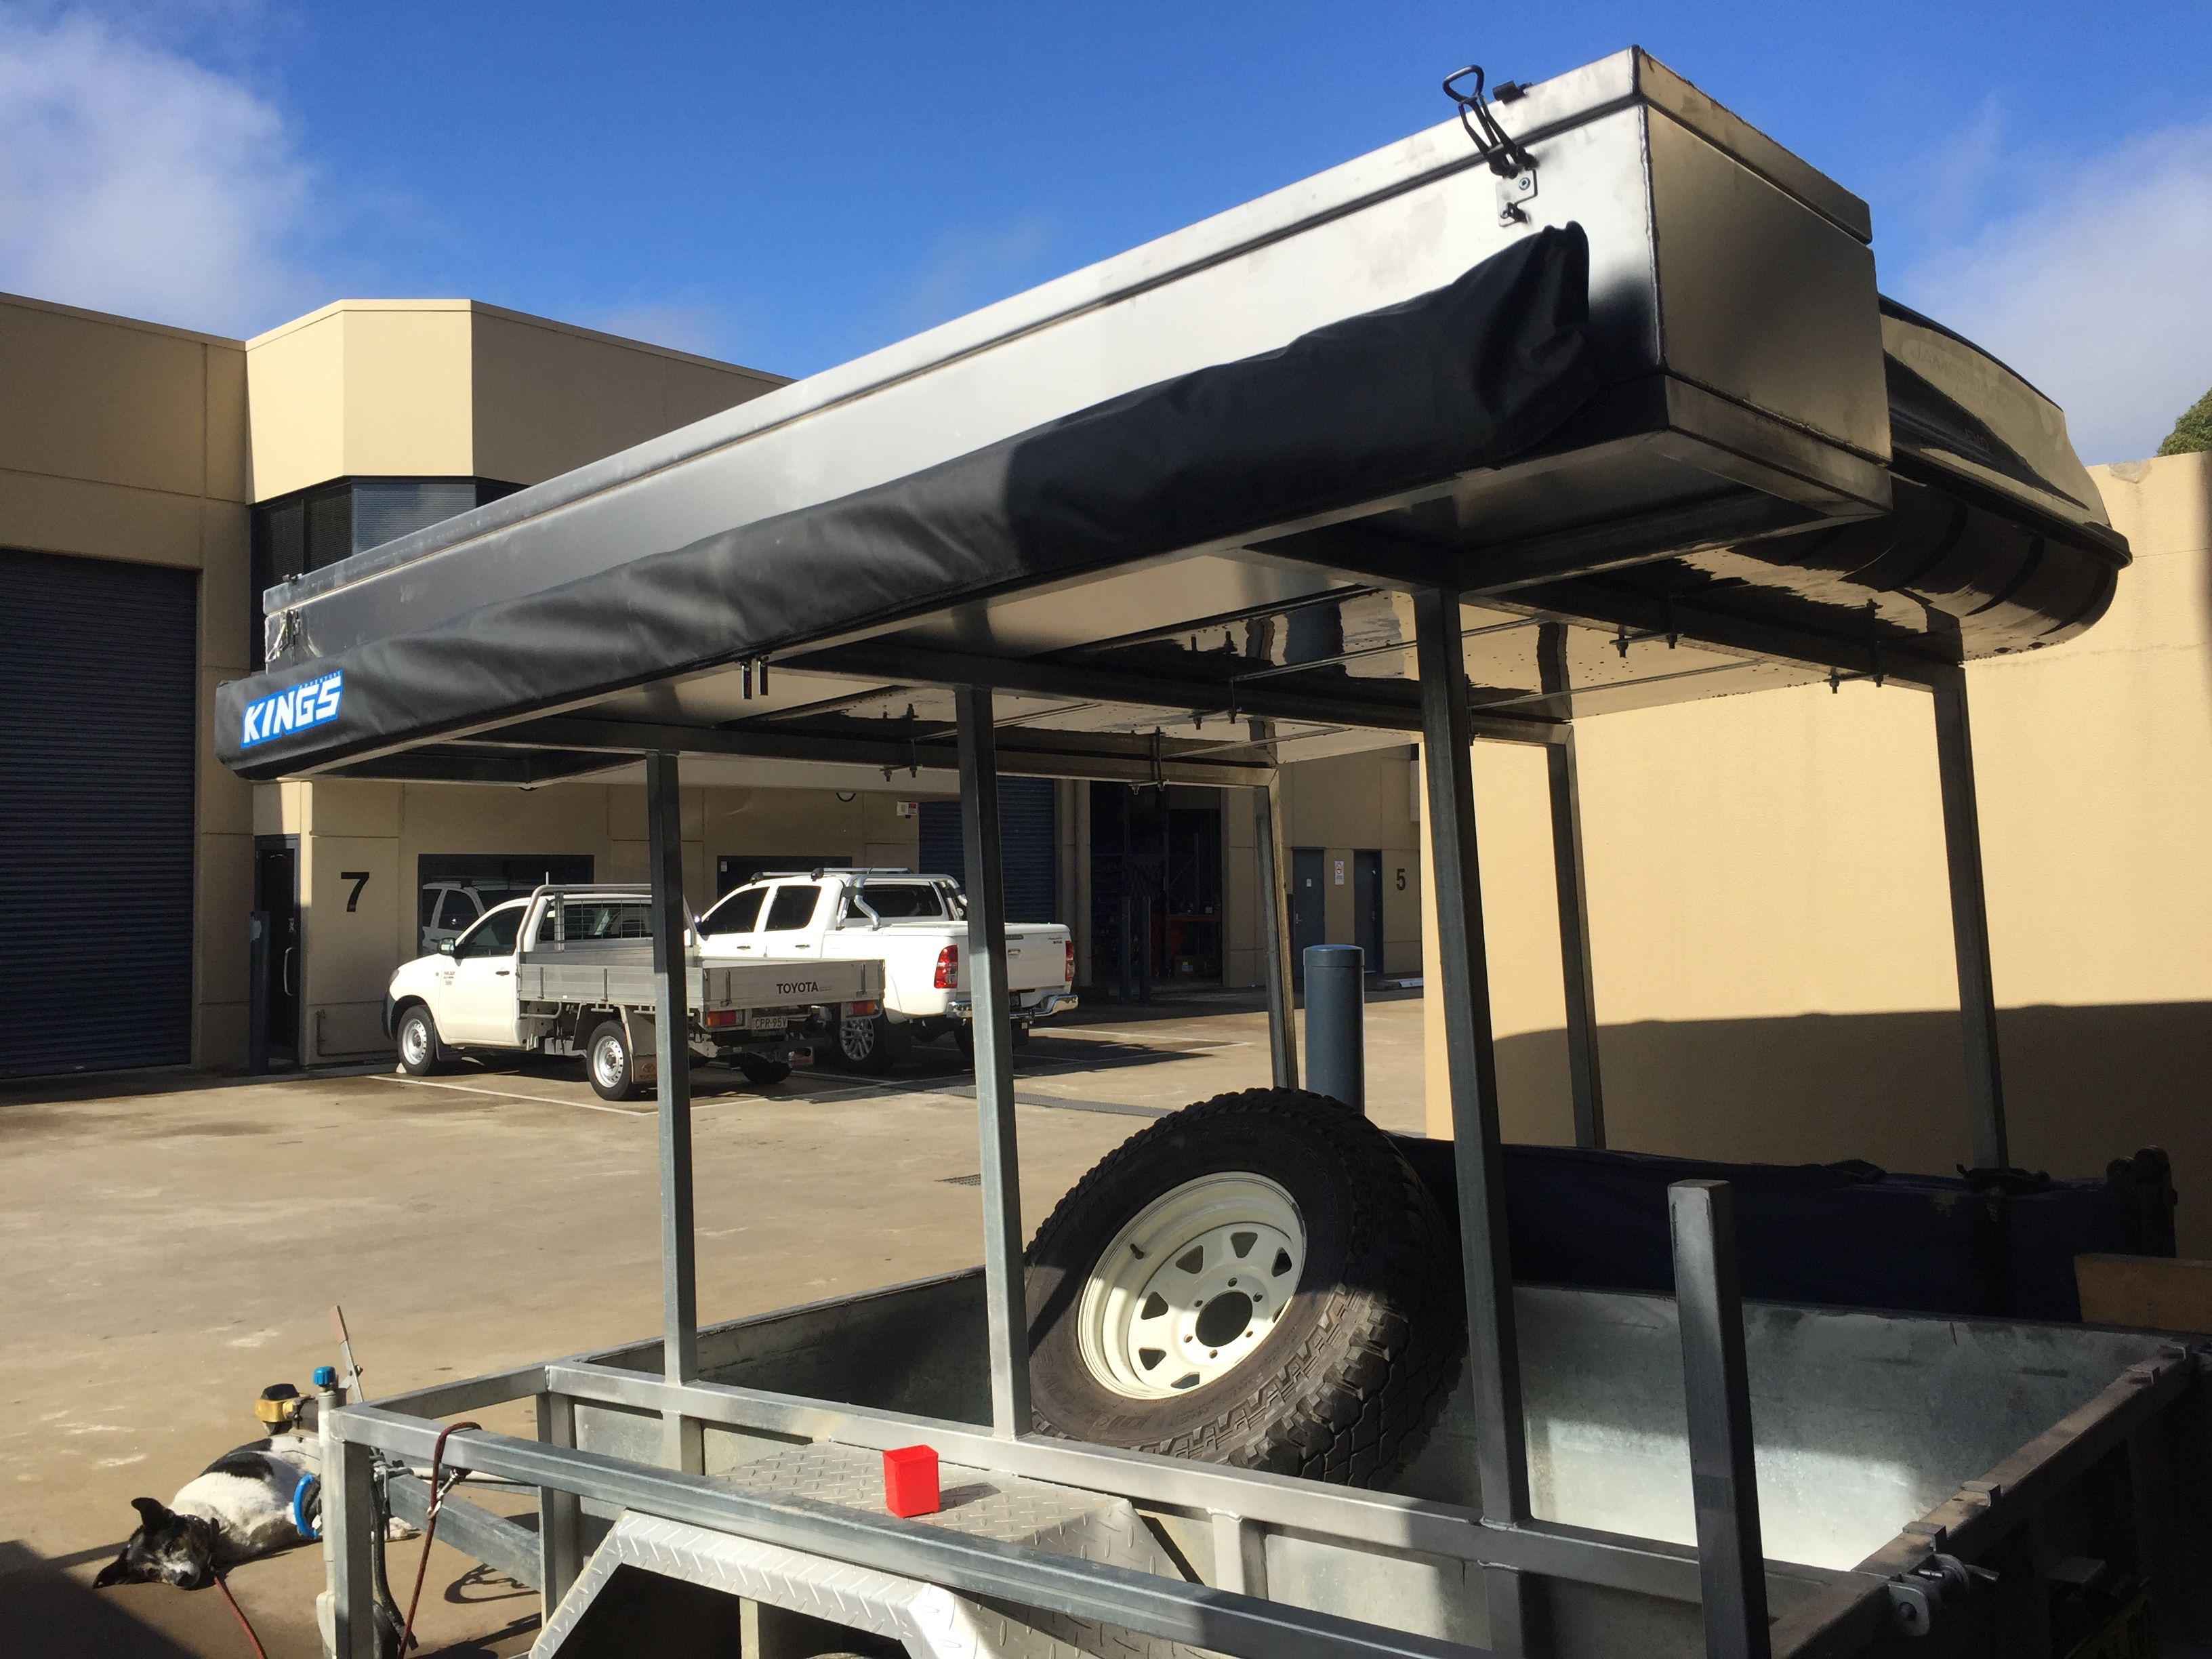 Storage Box And Side Awning Installed Tags Expedition Camper Trailer Home Made Diy Atv Quad Bike Campin Expedition Trailer Trailer Plans Camp Kitchen